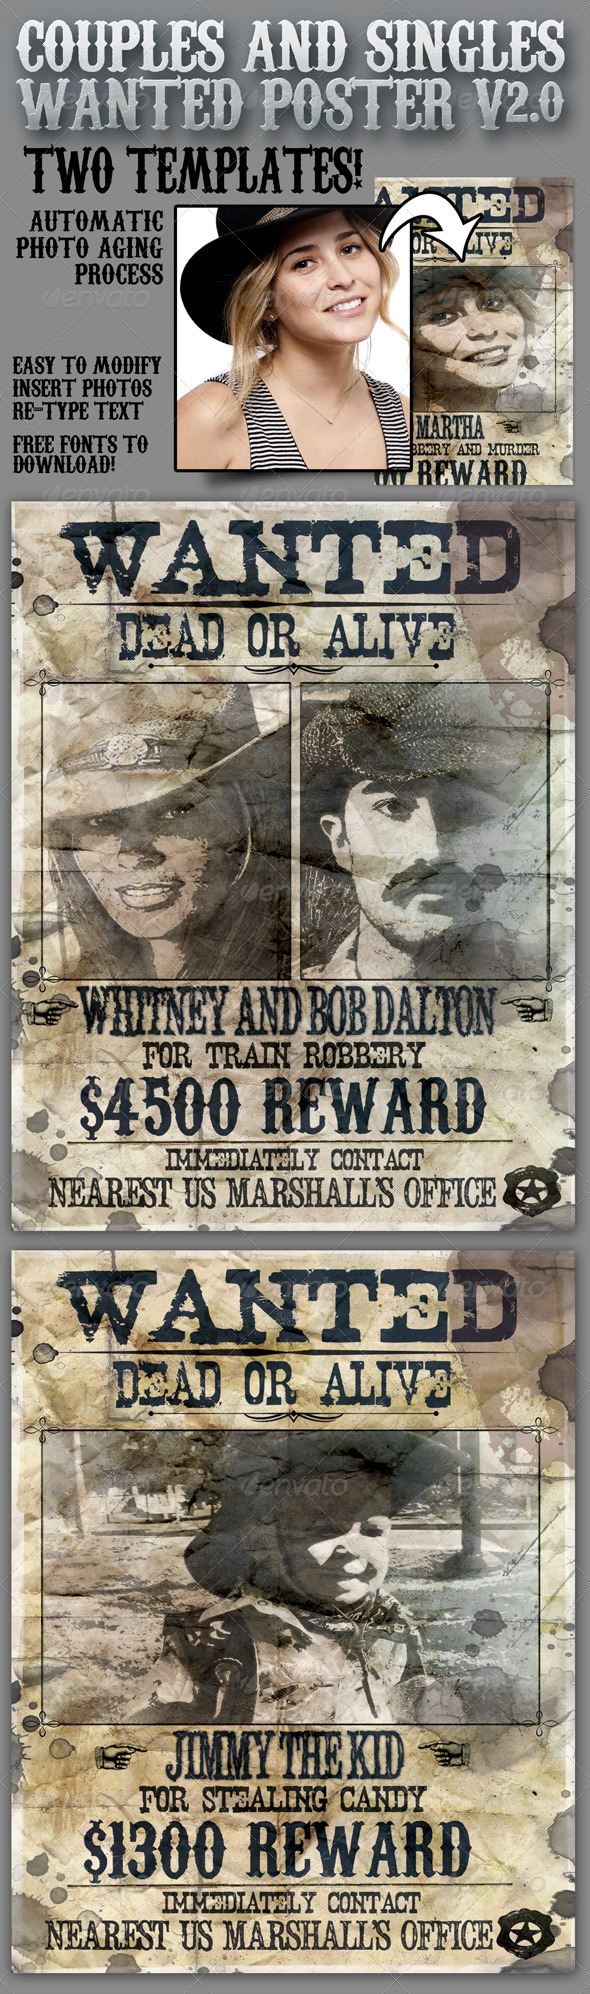 Wanted Poster 8.5x11 For Singles And Couples V2.0. Download